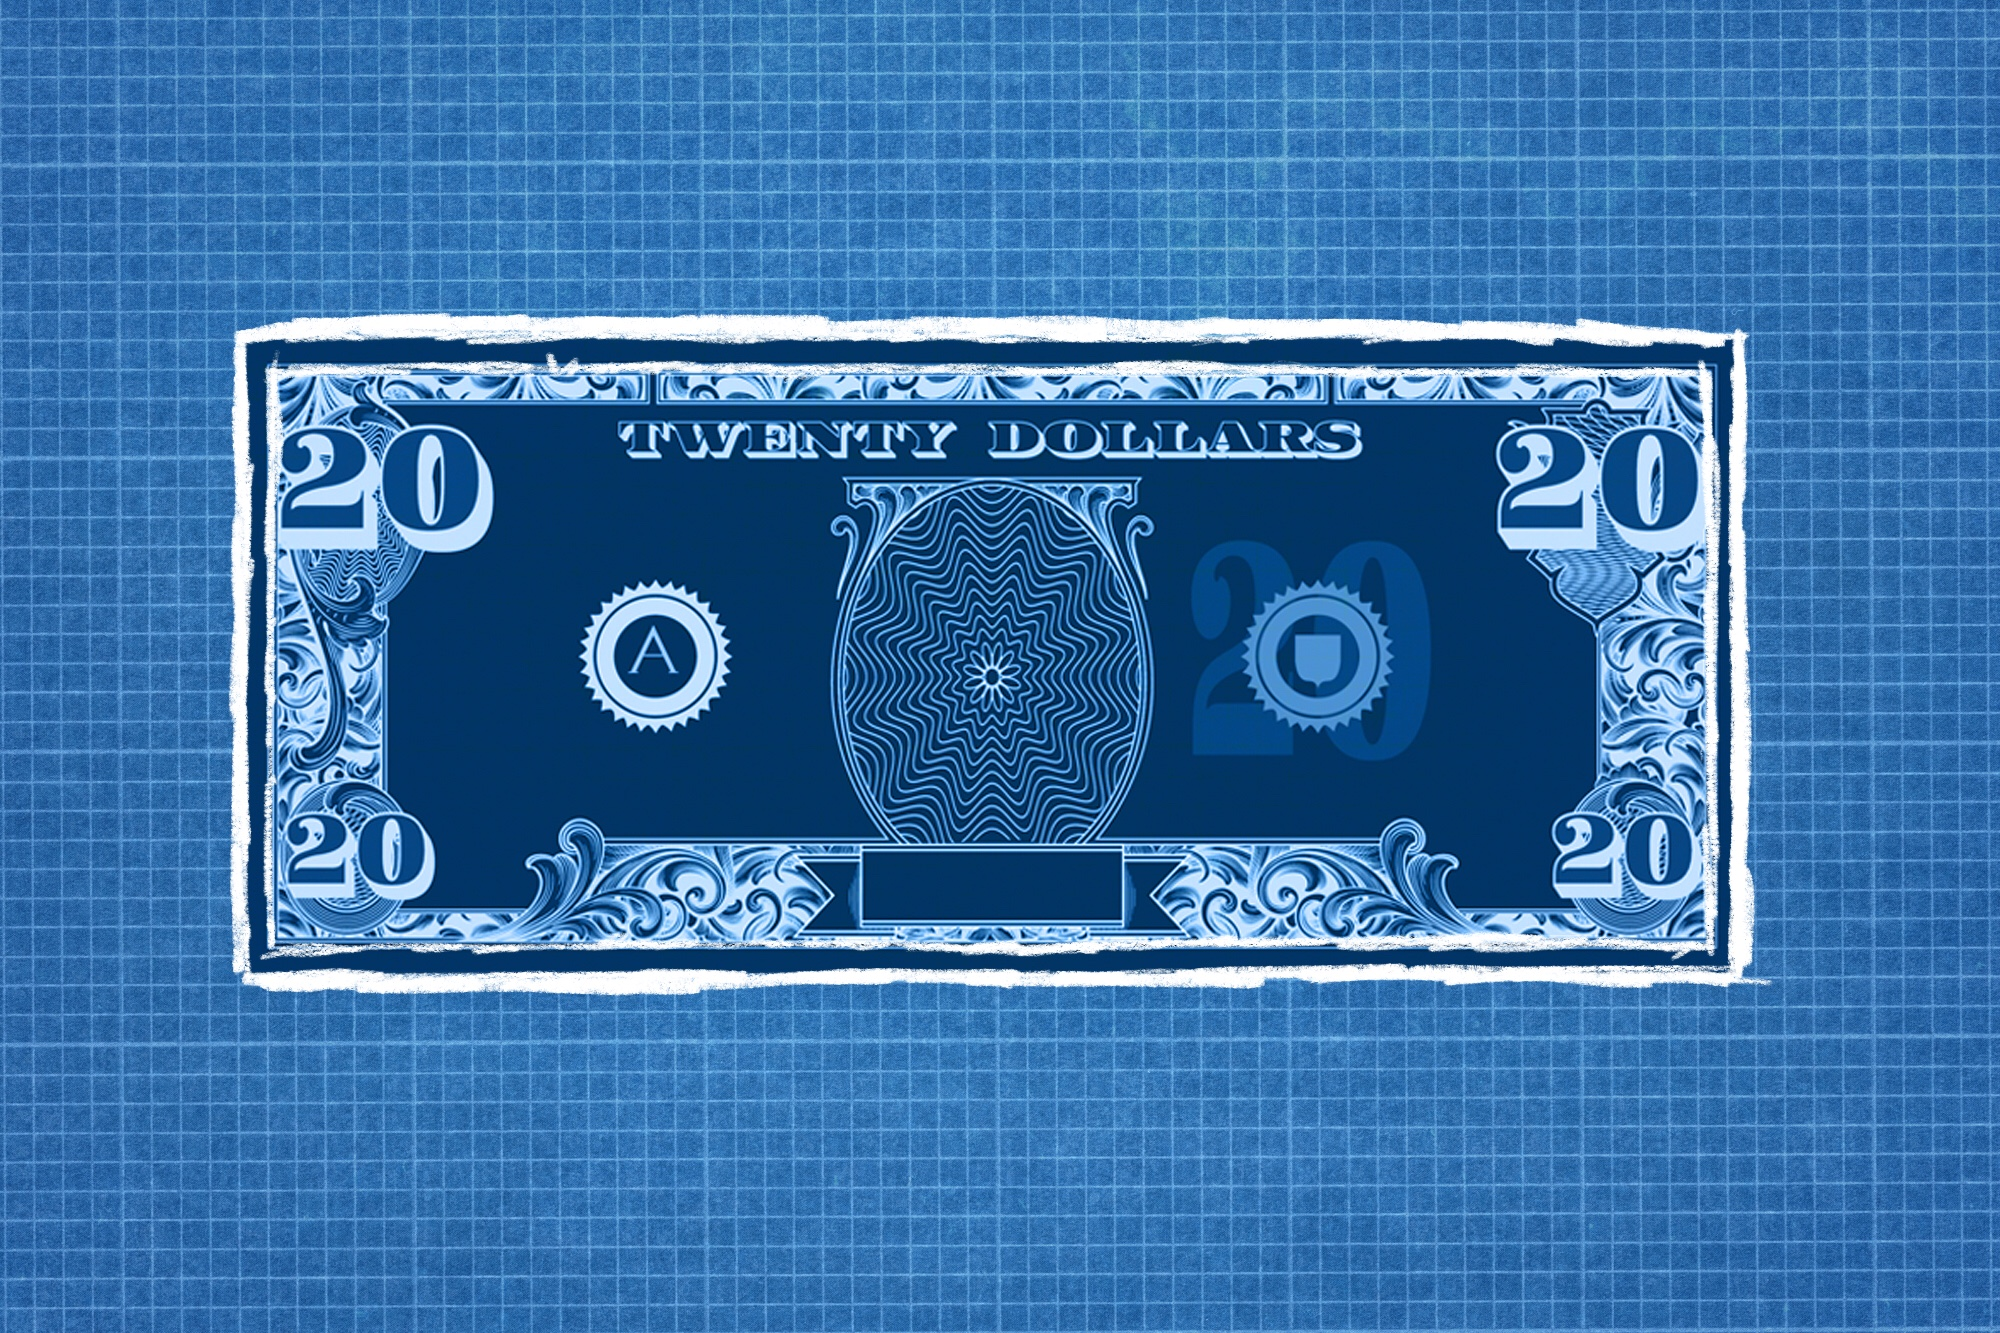 Opinion | America Has a Long History of Redesigning Its Currency. Let's Revive It.